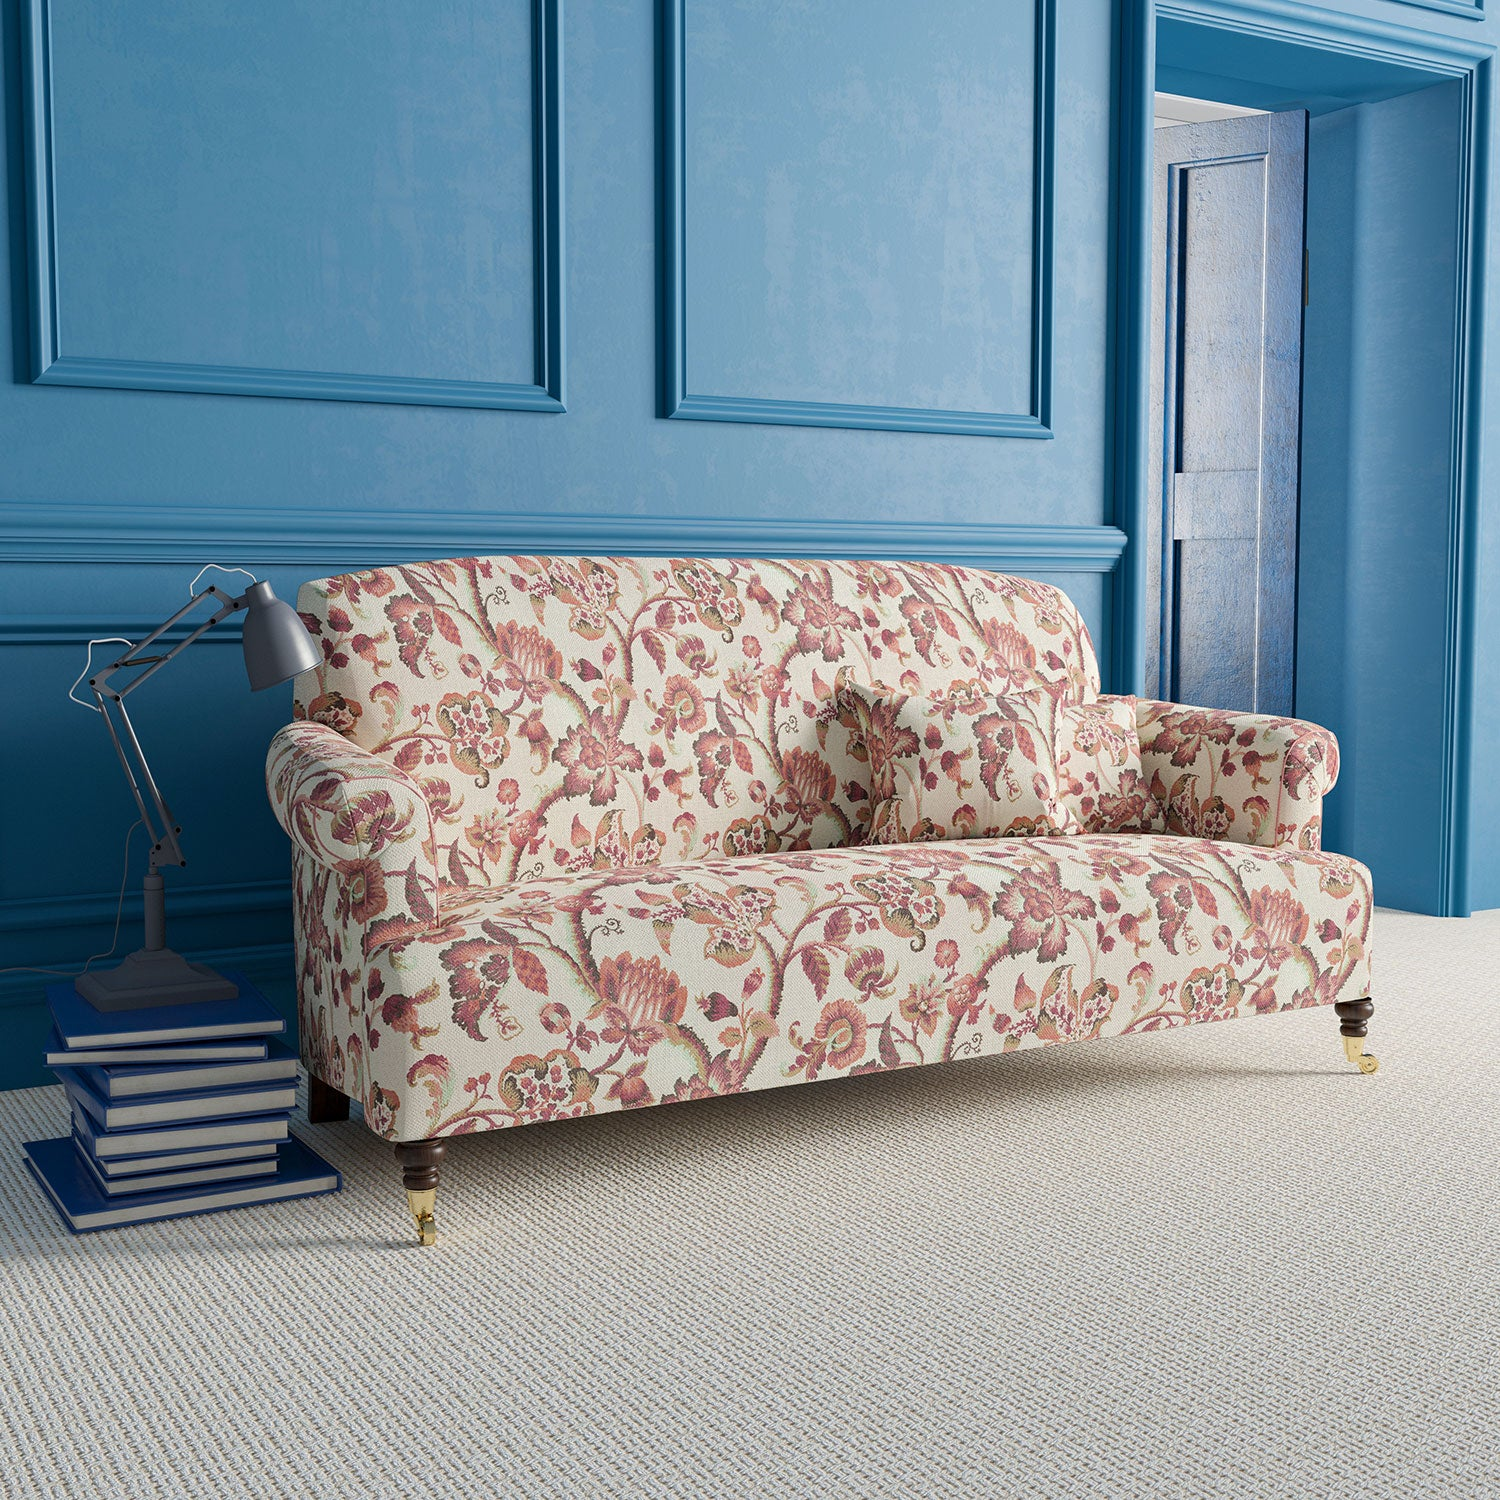 Sofa upholstered in neutral fabric with red and terracotta vine and floral design. Design name - Haryana. Colourway - Jaipur